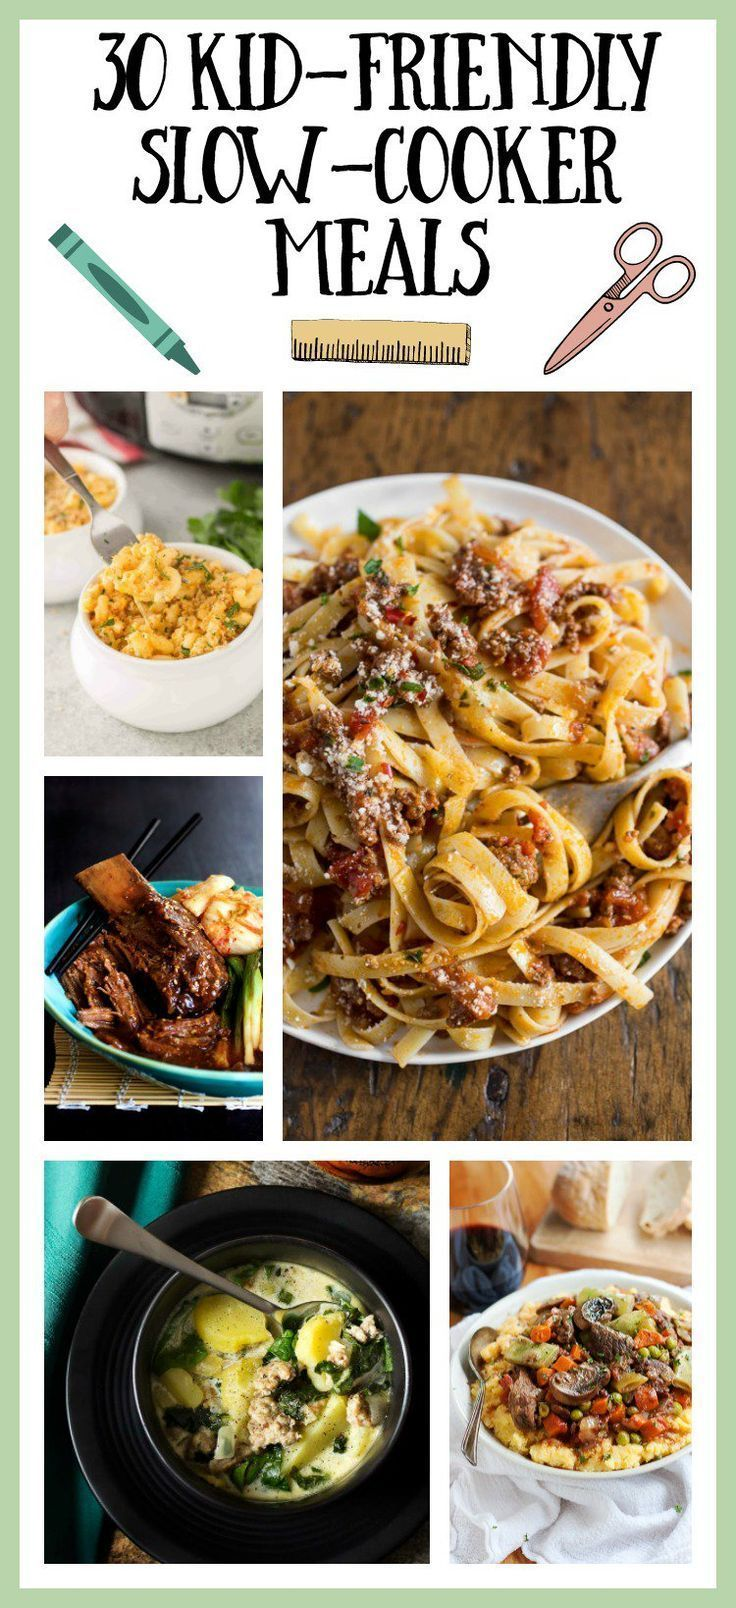 30 Kid-Friendly Slow-Cooker Meals images